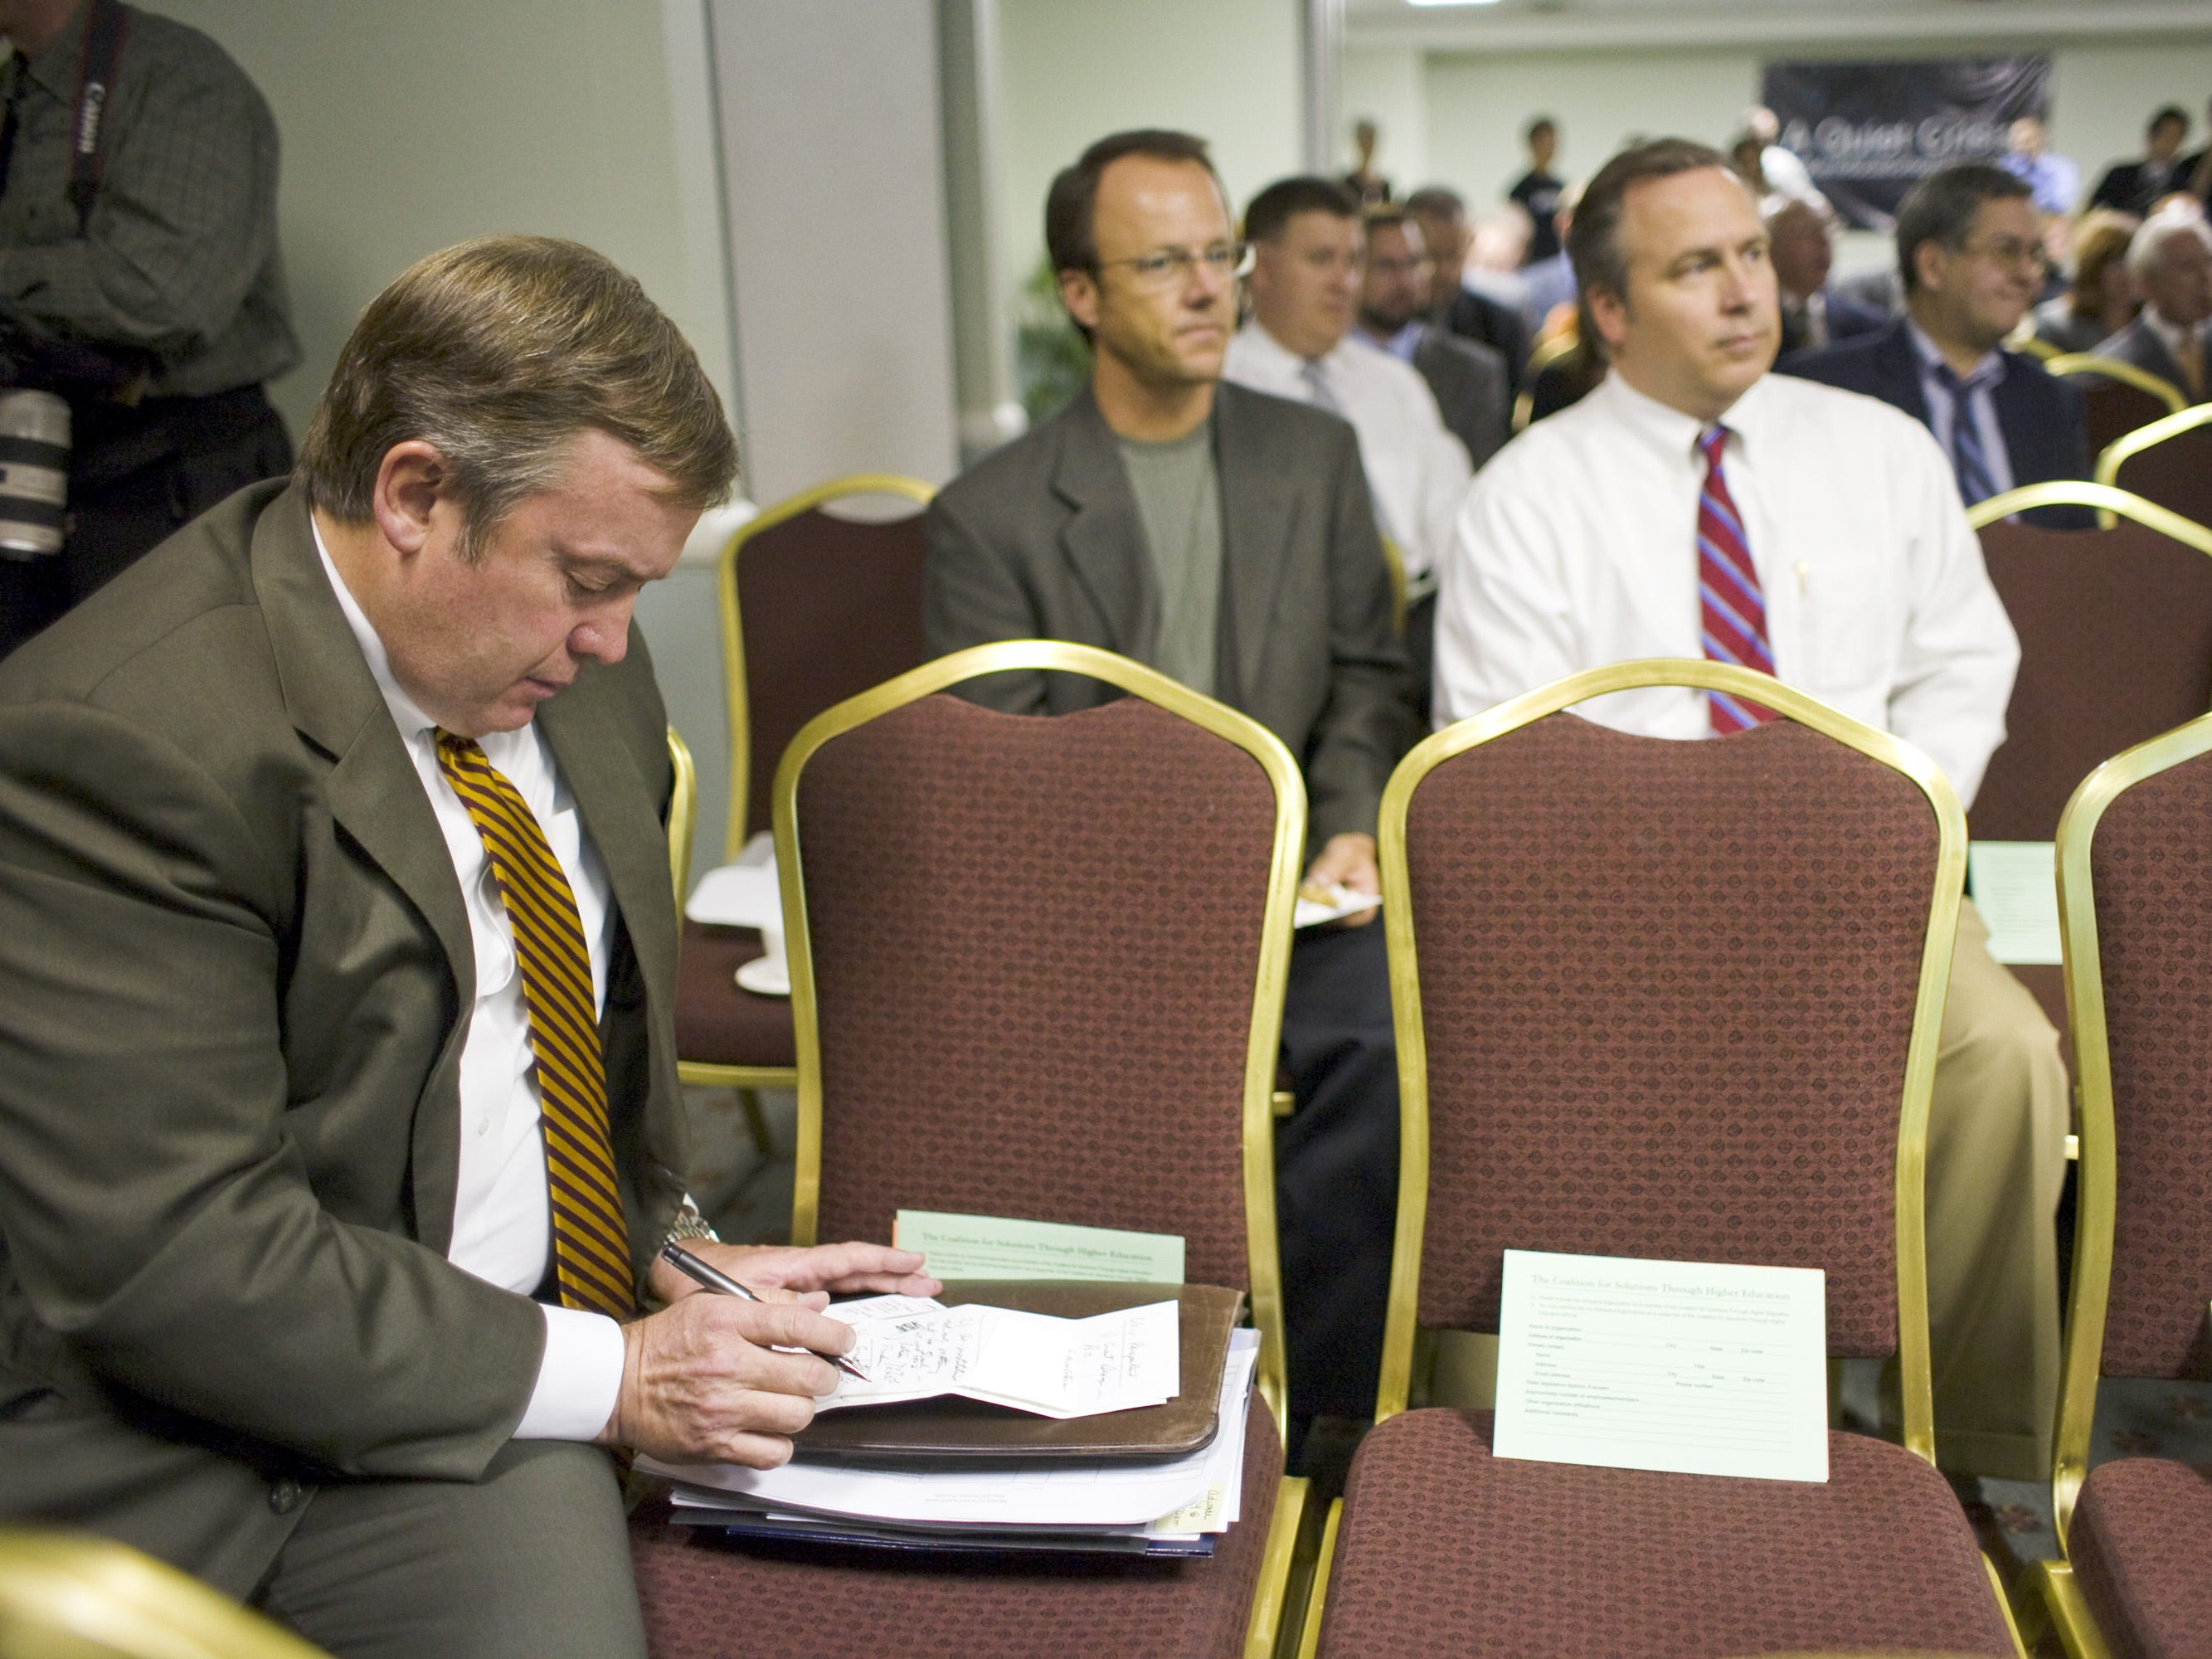 ASU President Michael Crow reviews his notes before speaking at the Phoenix Country Club in 2007.